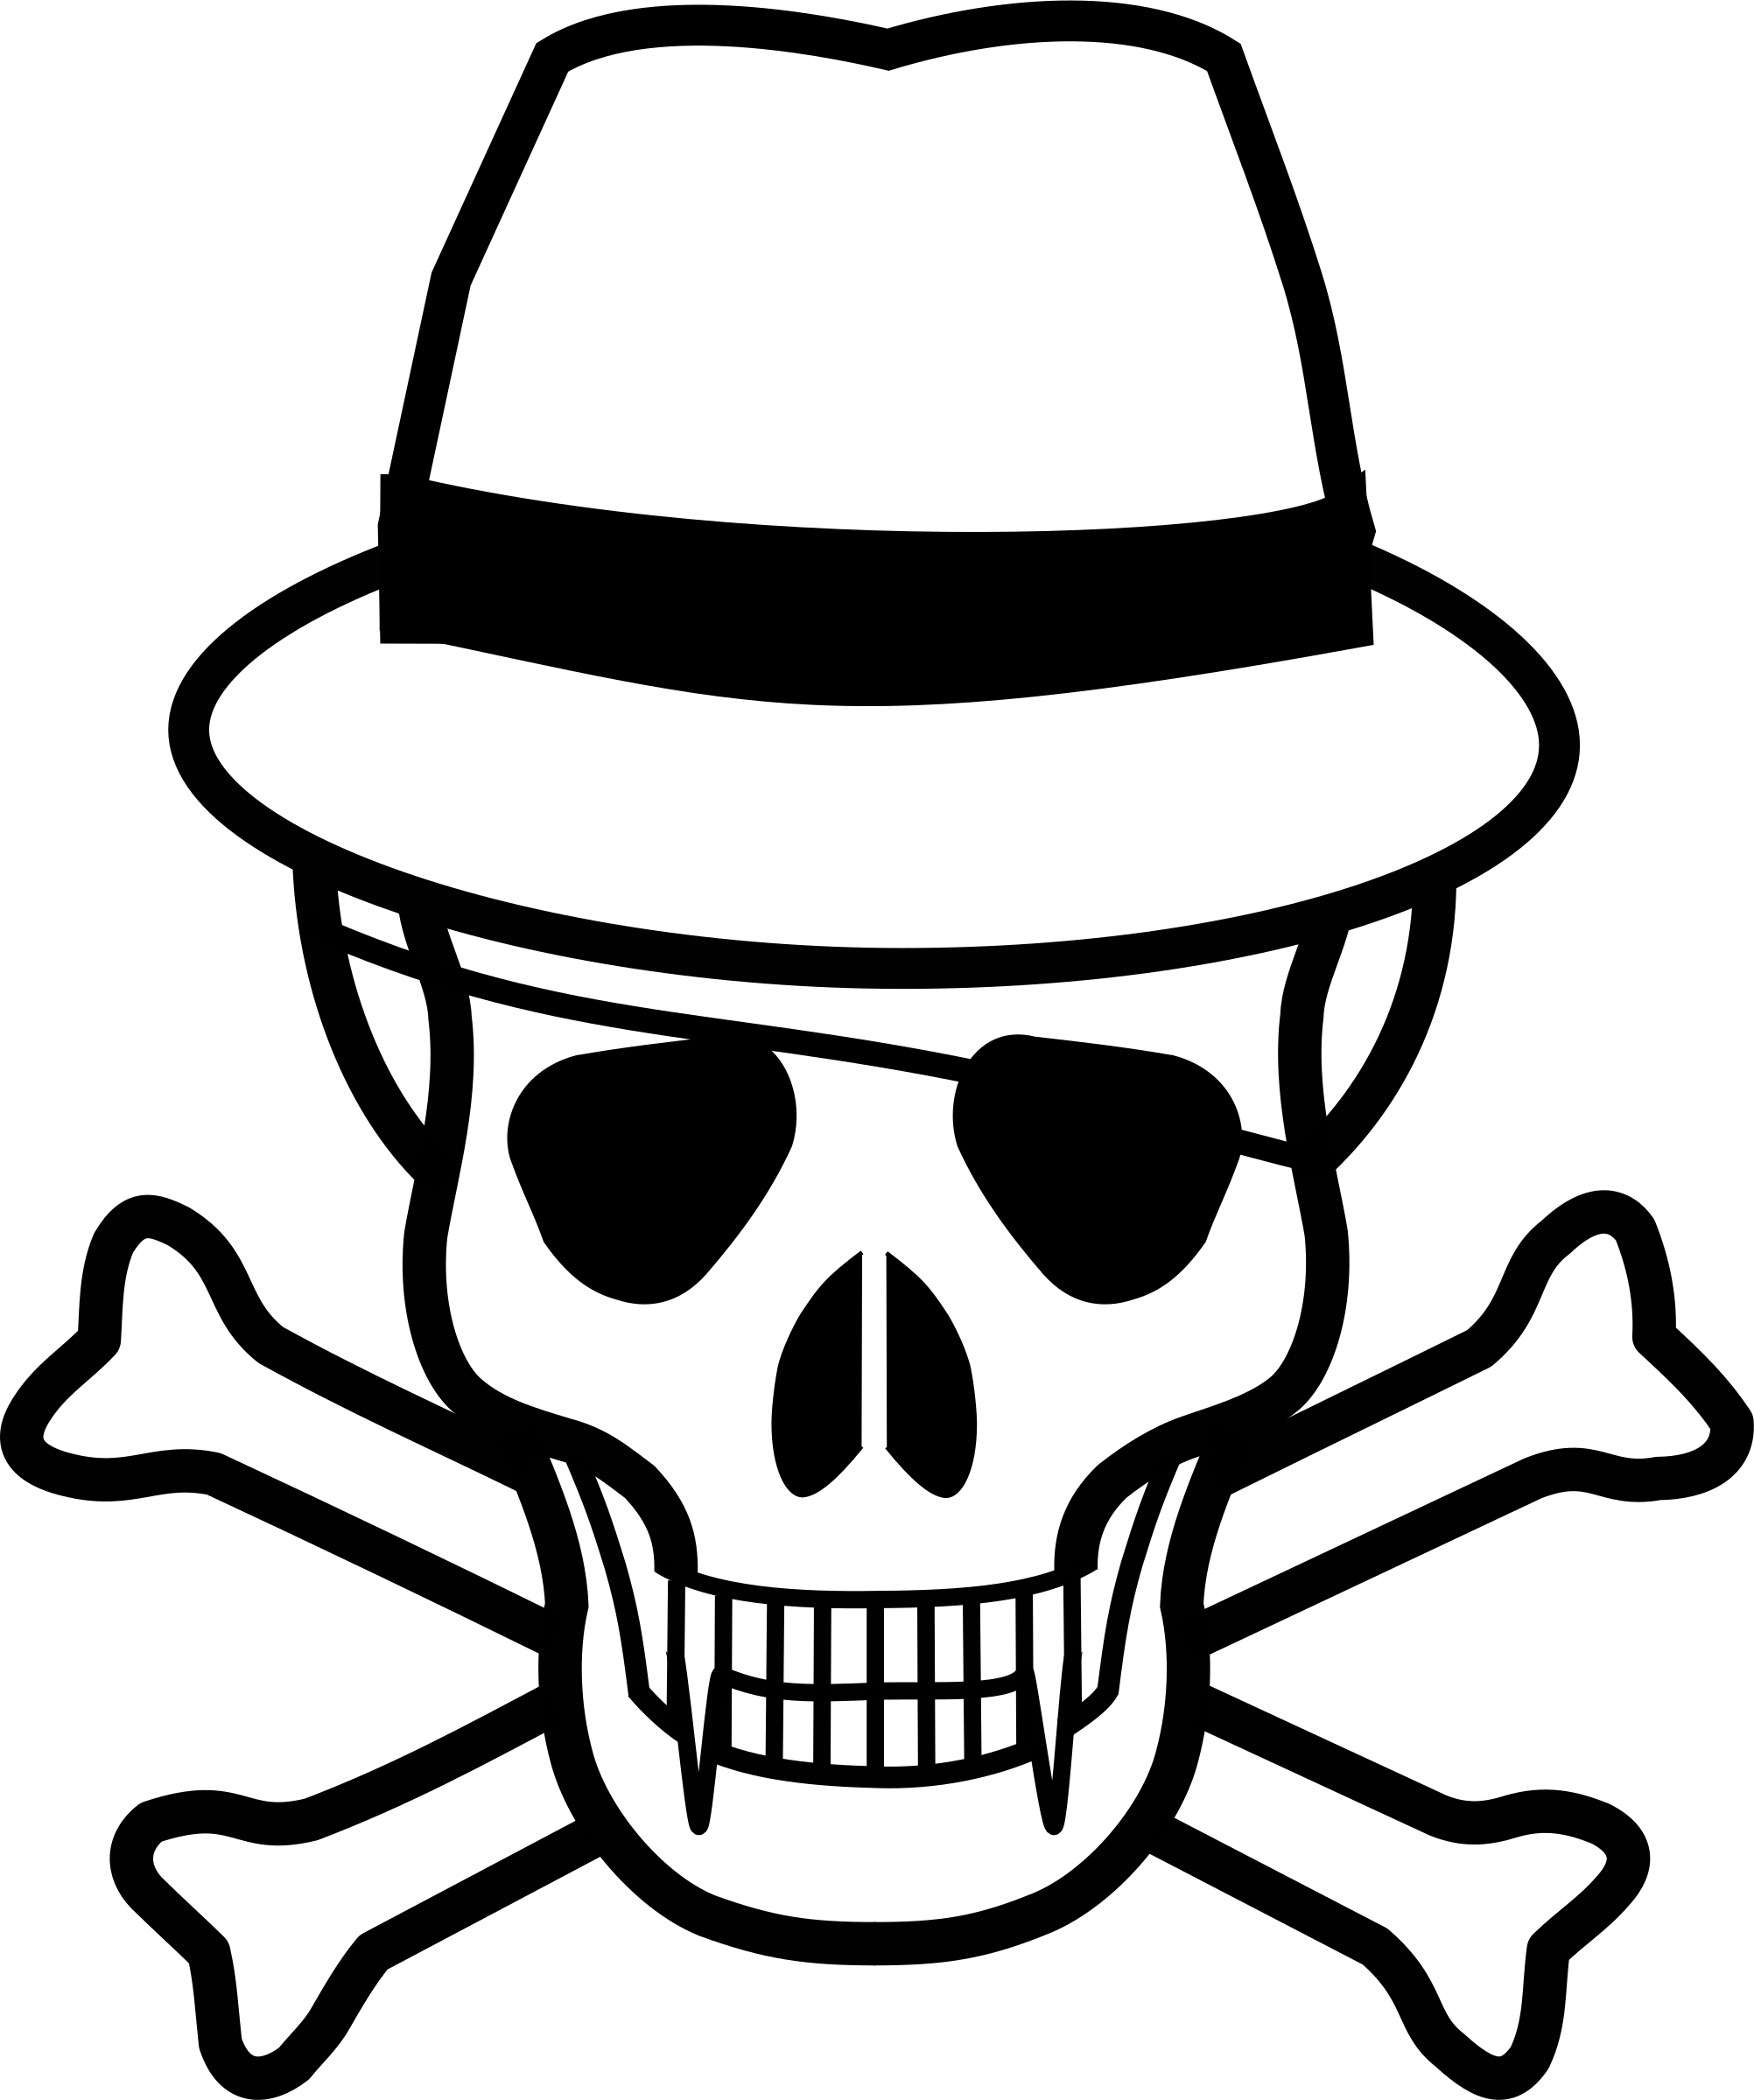 Vector sombrero skull. And hat icons png